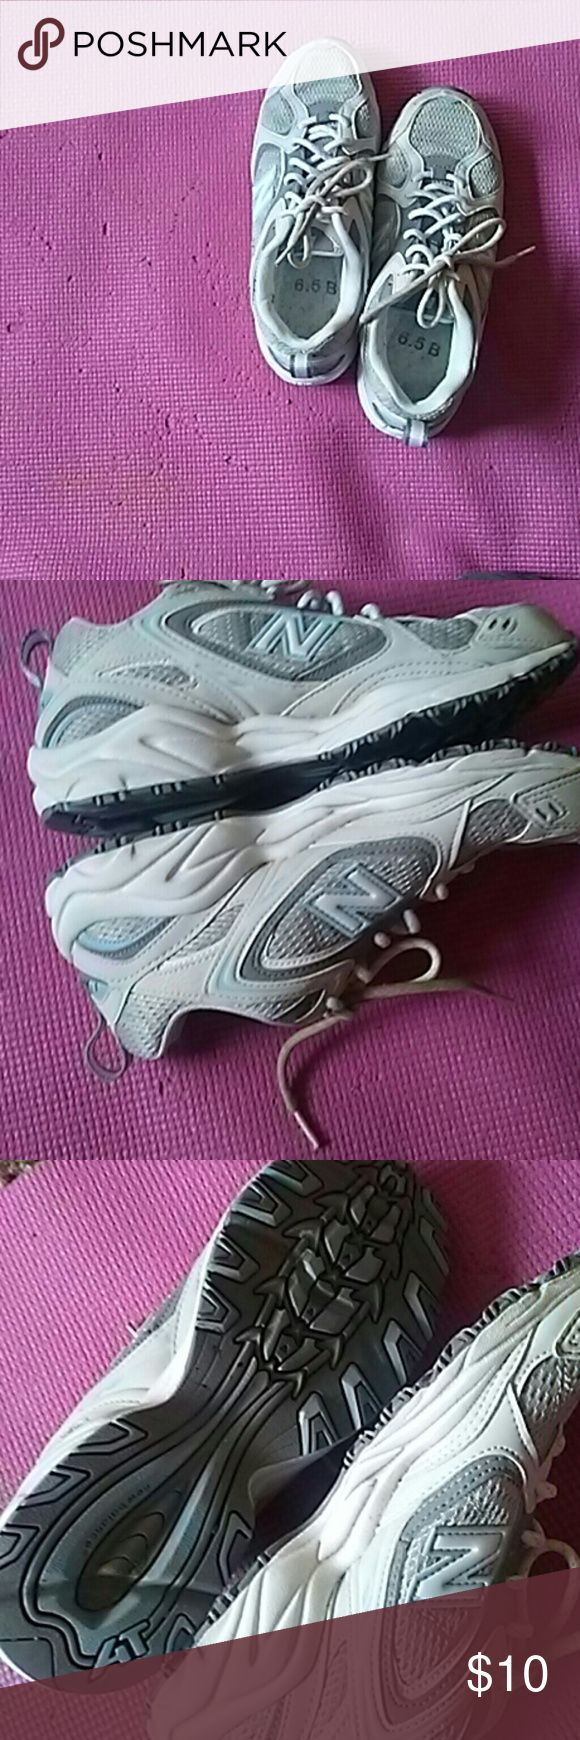 New balance sneakers These are ladies 6.5 sneakers without inserts good condition a little dirt on the laces but they have only been worn once New Balance Shoes Sneakers